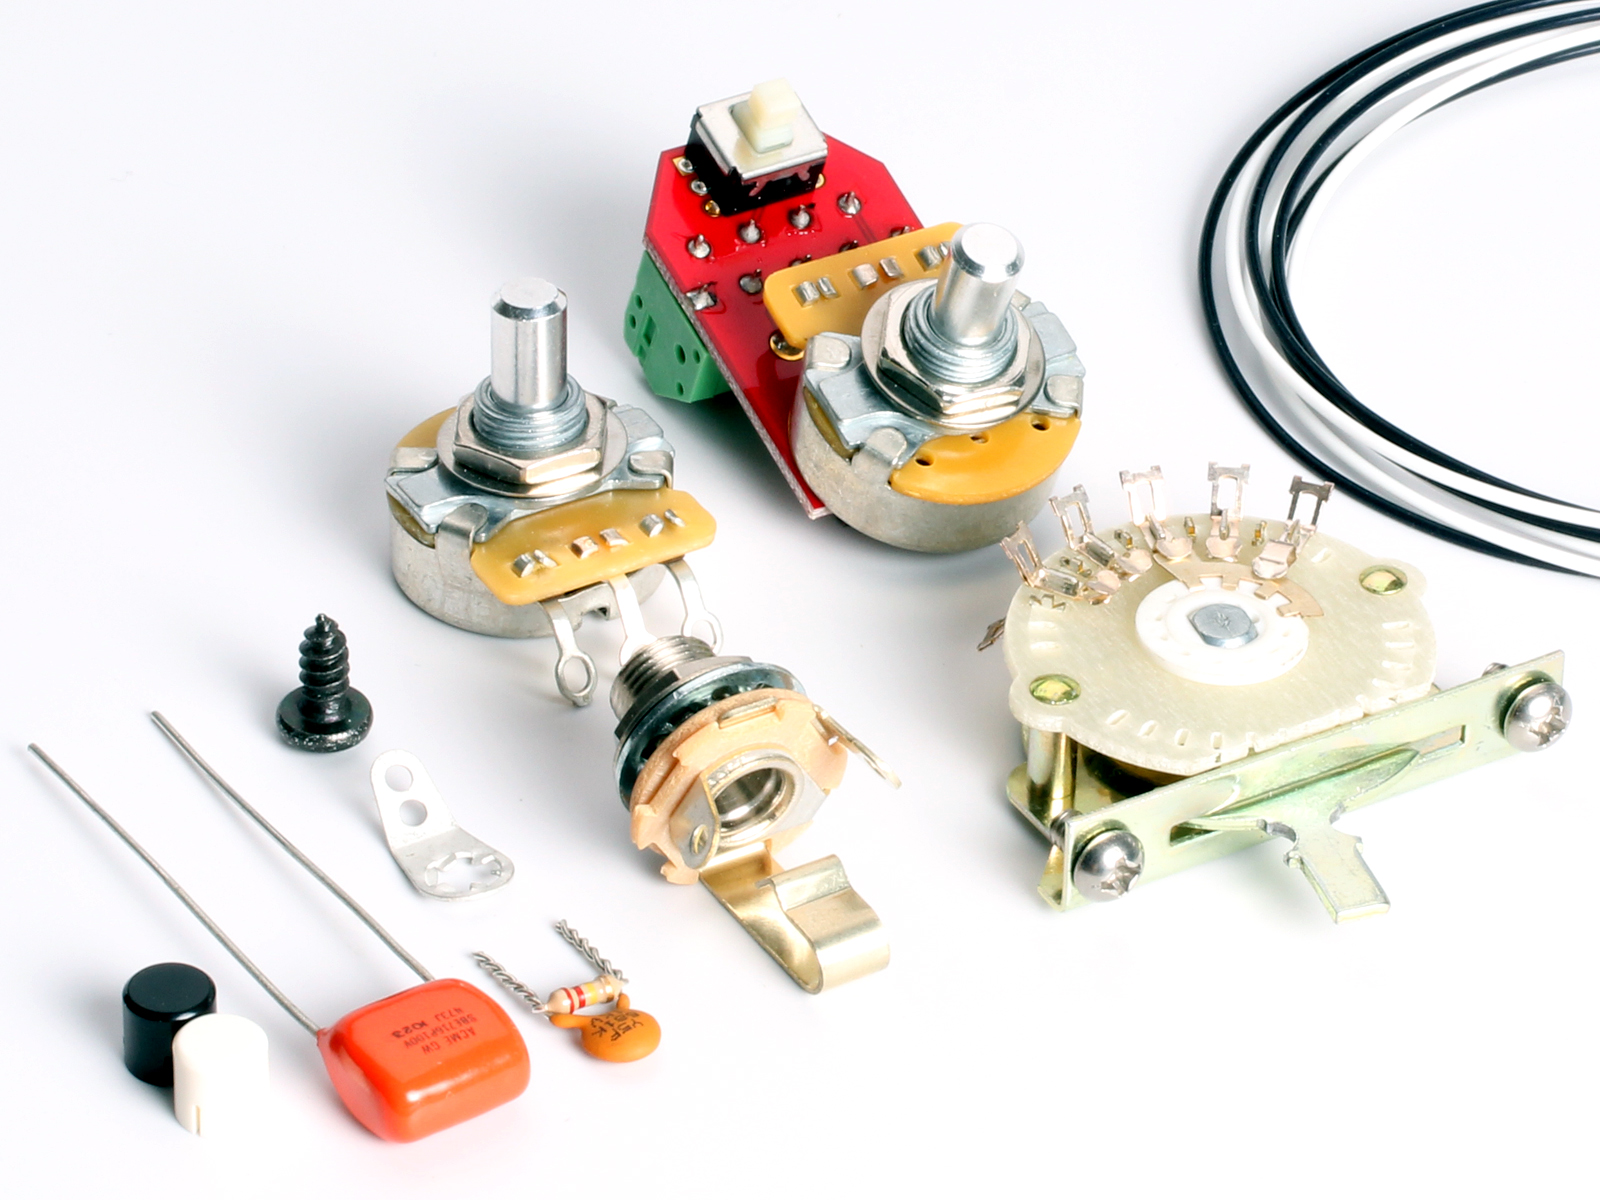 Toneshapers Wiring Kit Telecaster Ss10 4 Way Ts W Tcb Click On Image For Expanded Zoom